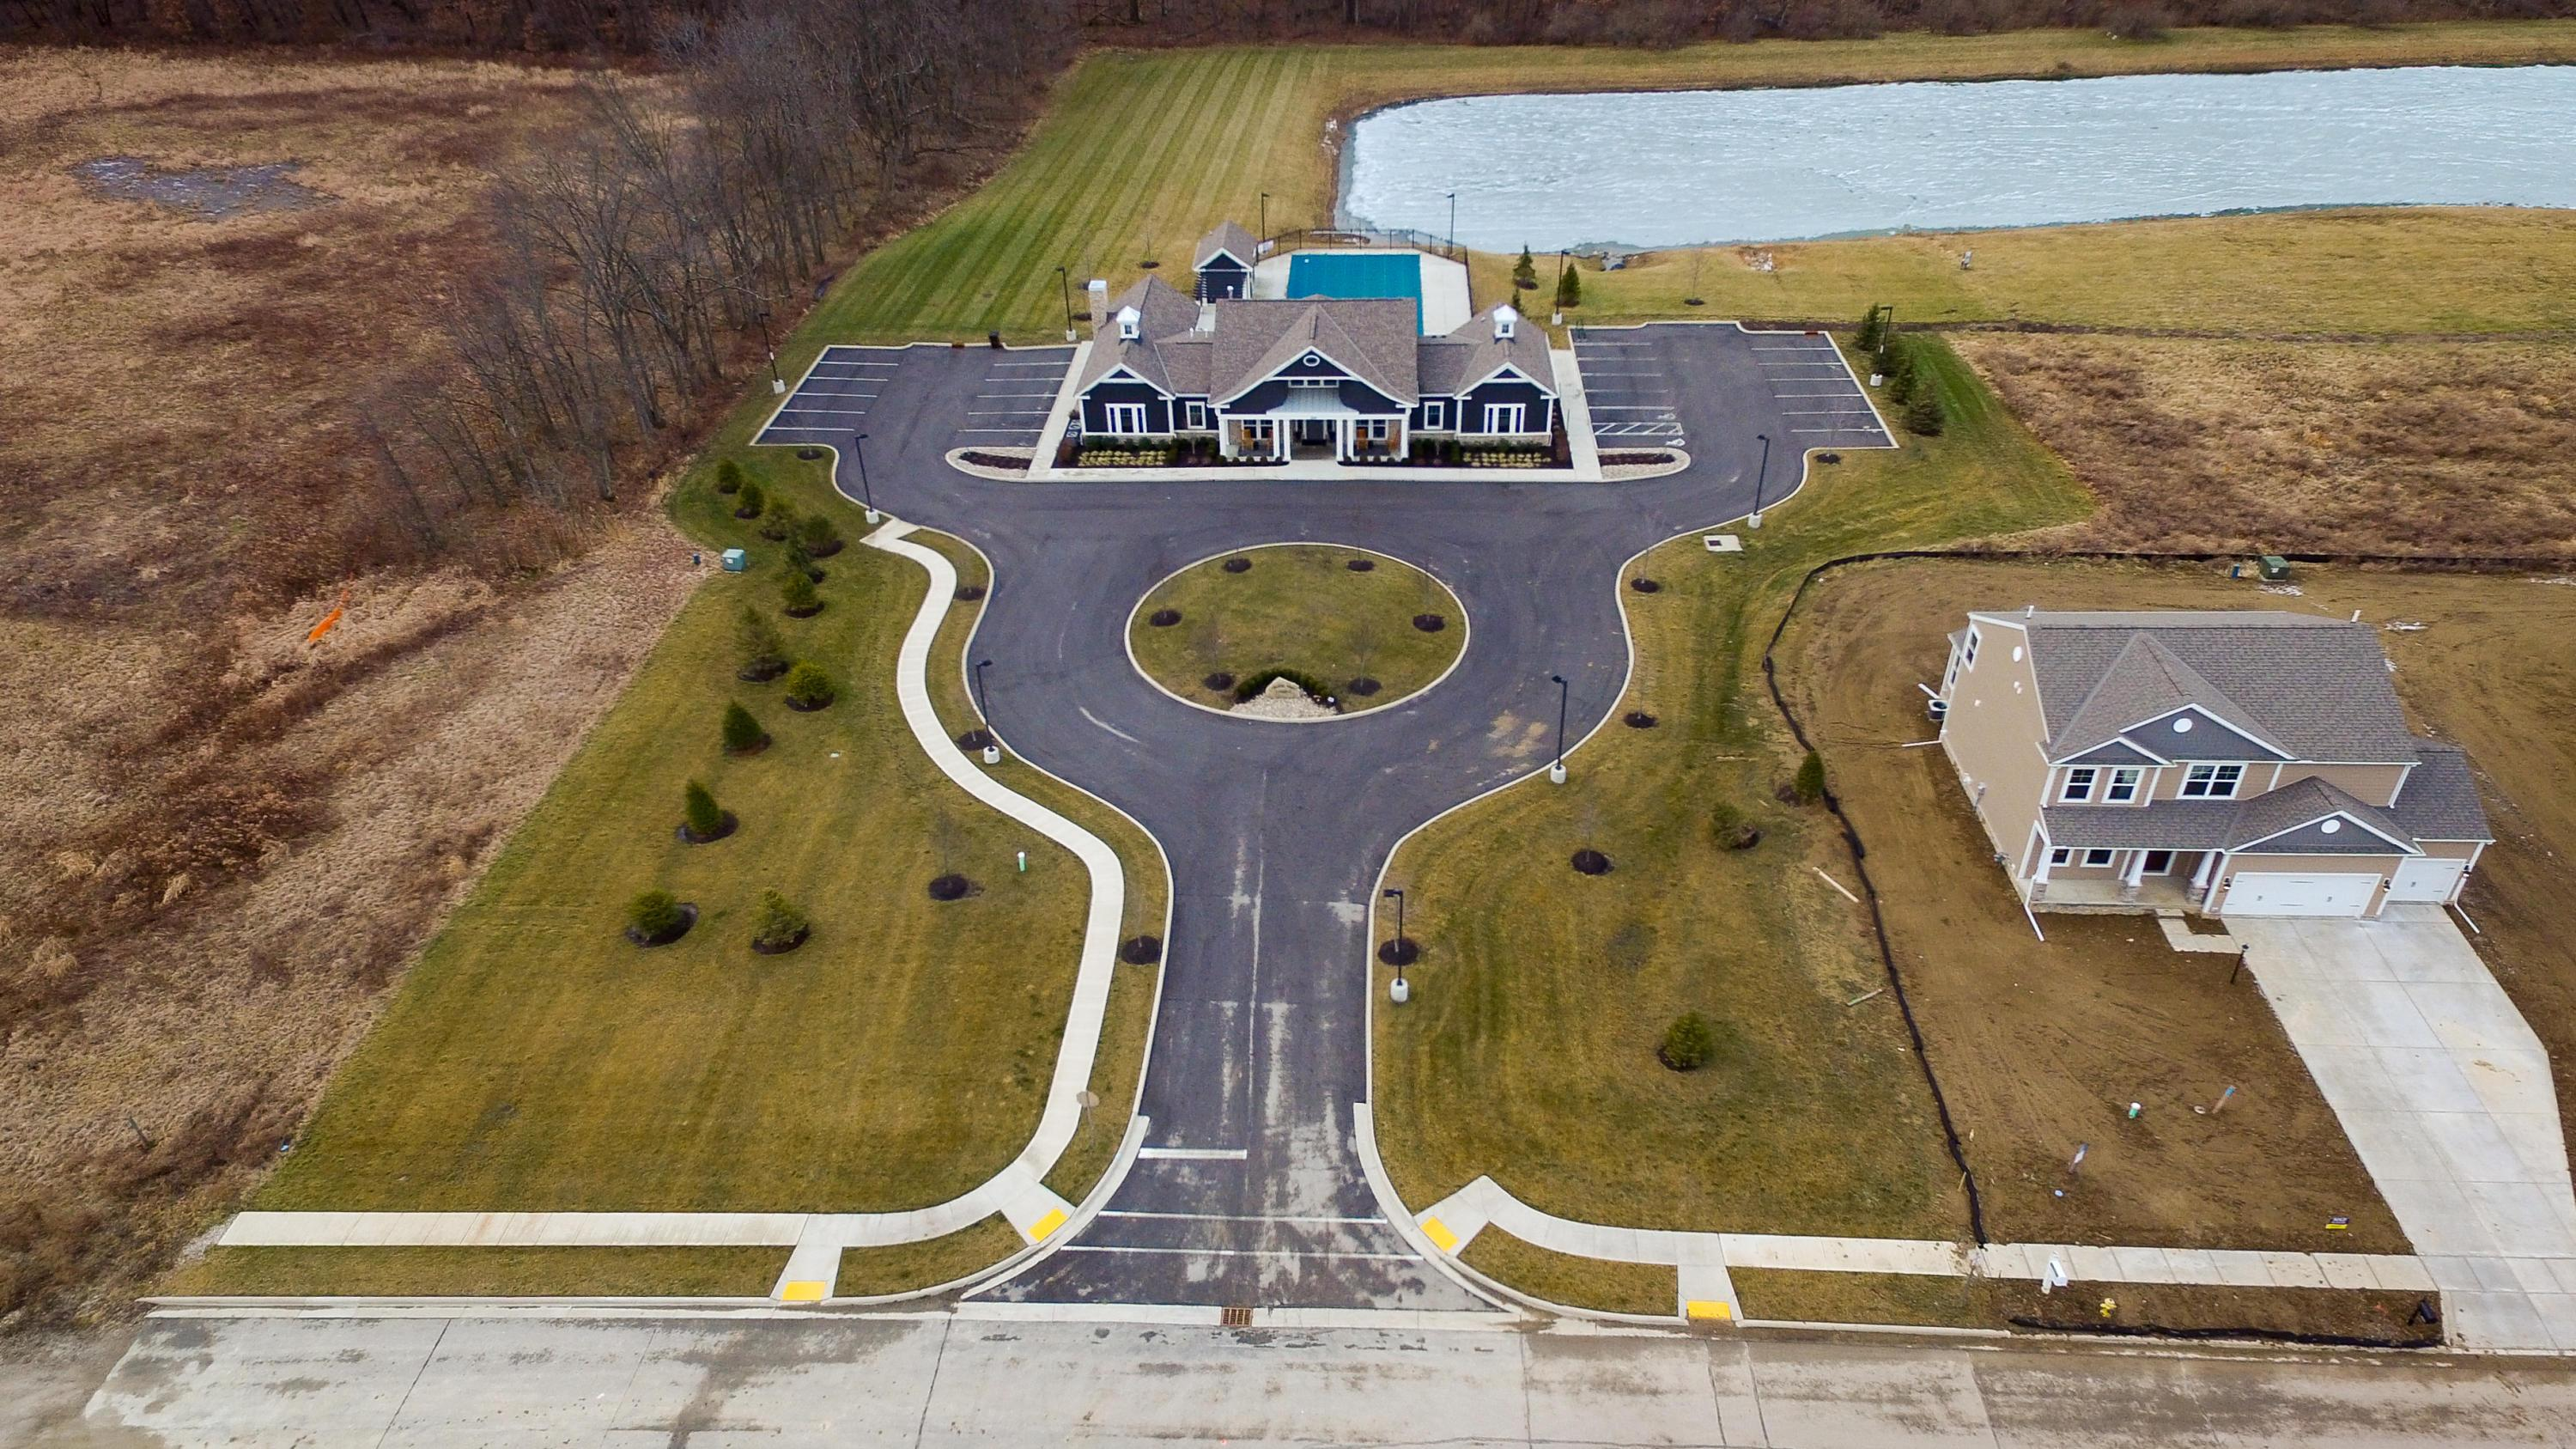 Overhead view of clubhouse